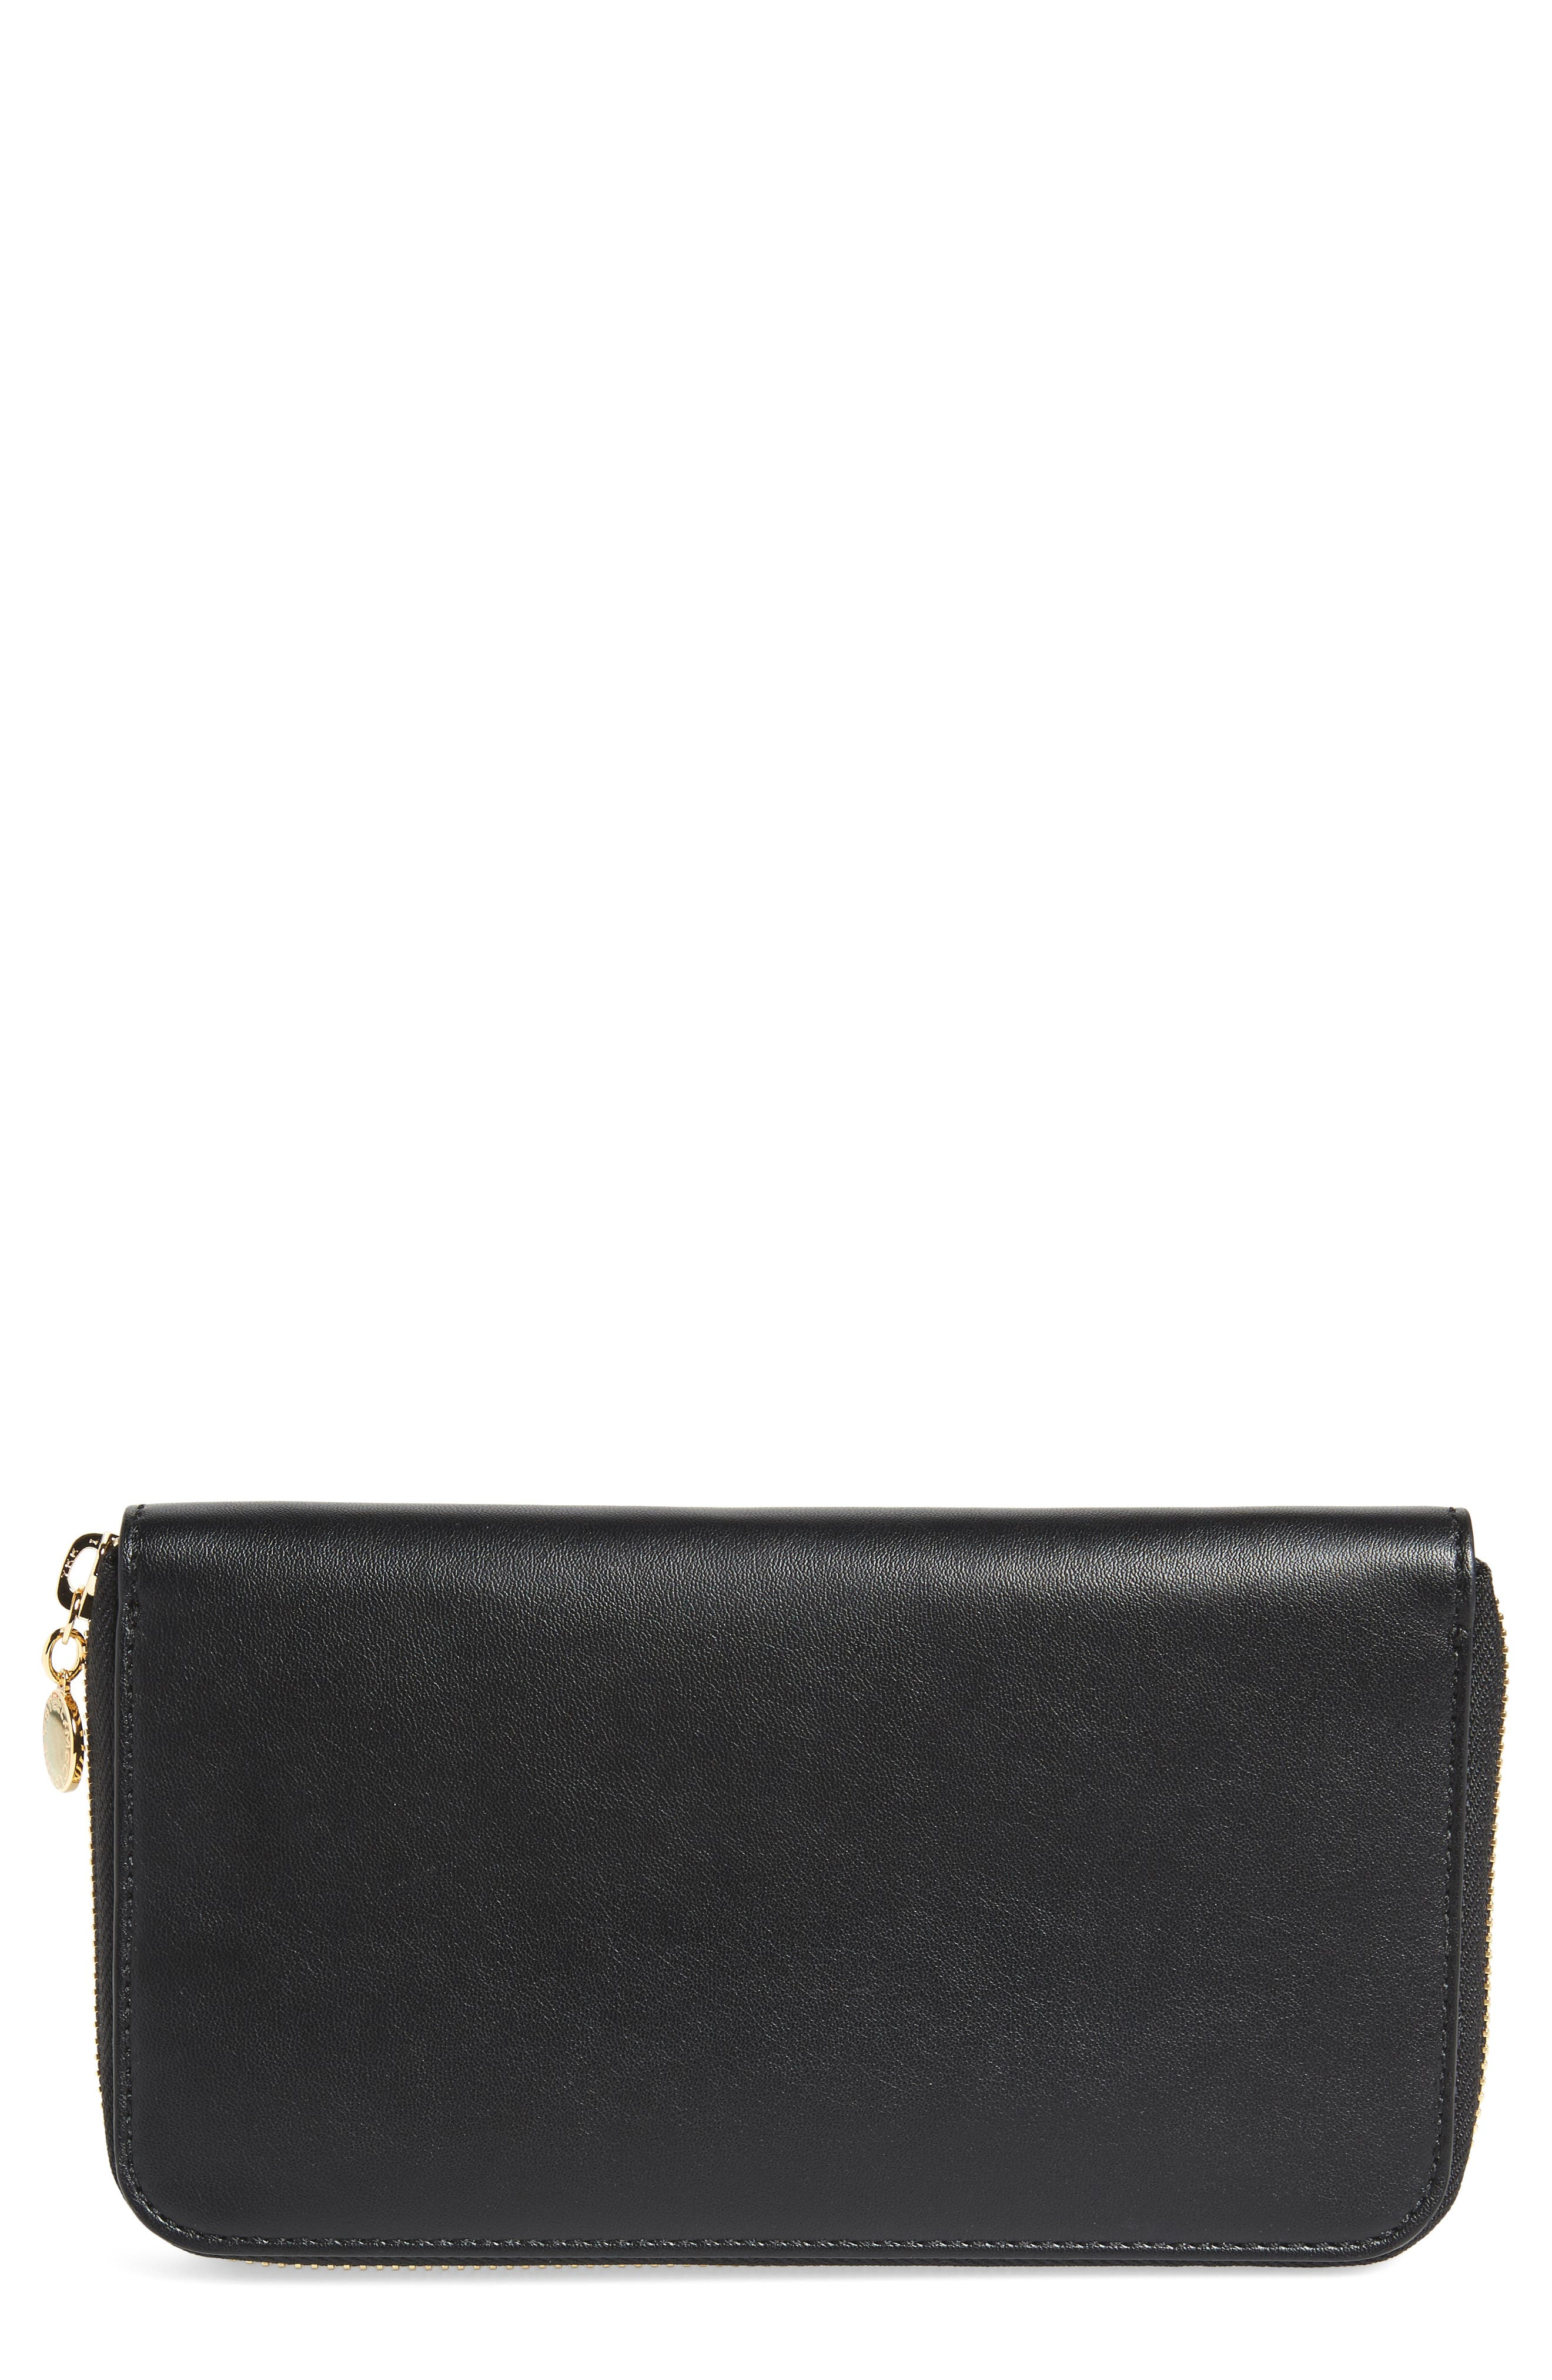 Stella Mccartney Alter Nappa Perforated Logo Faux Leather Wallet - Black